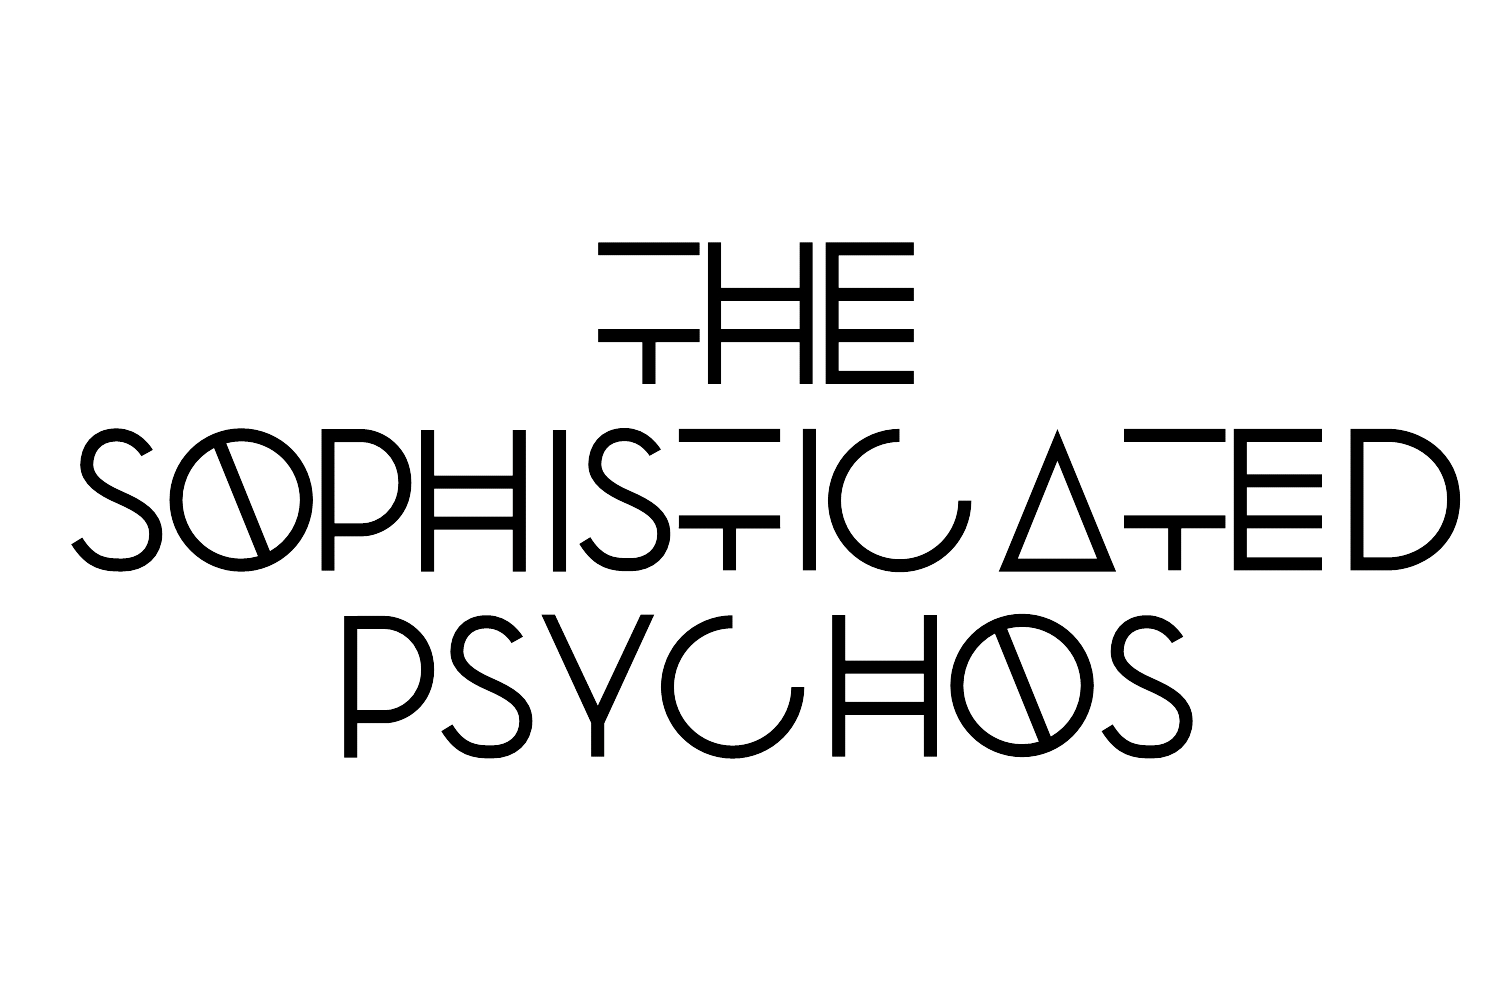 The Sophisticated Psychos Logo